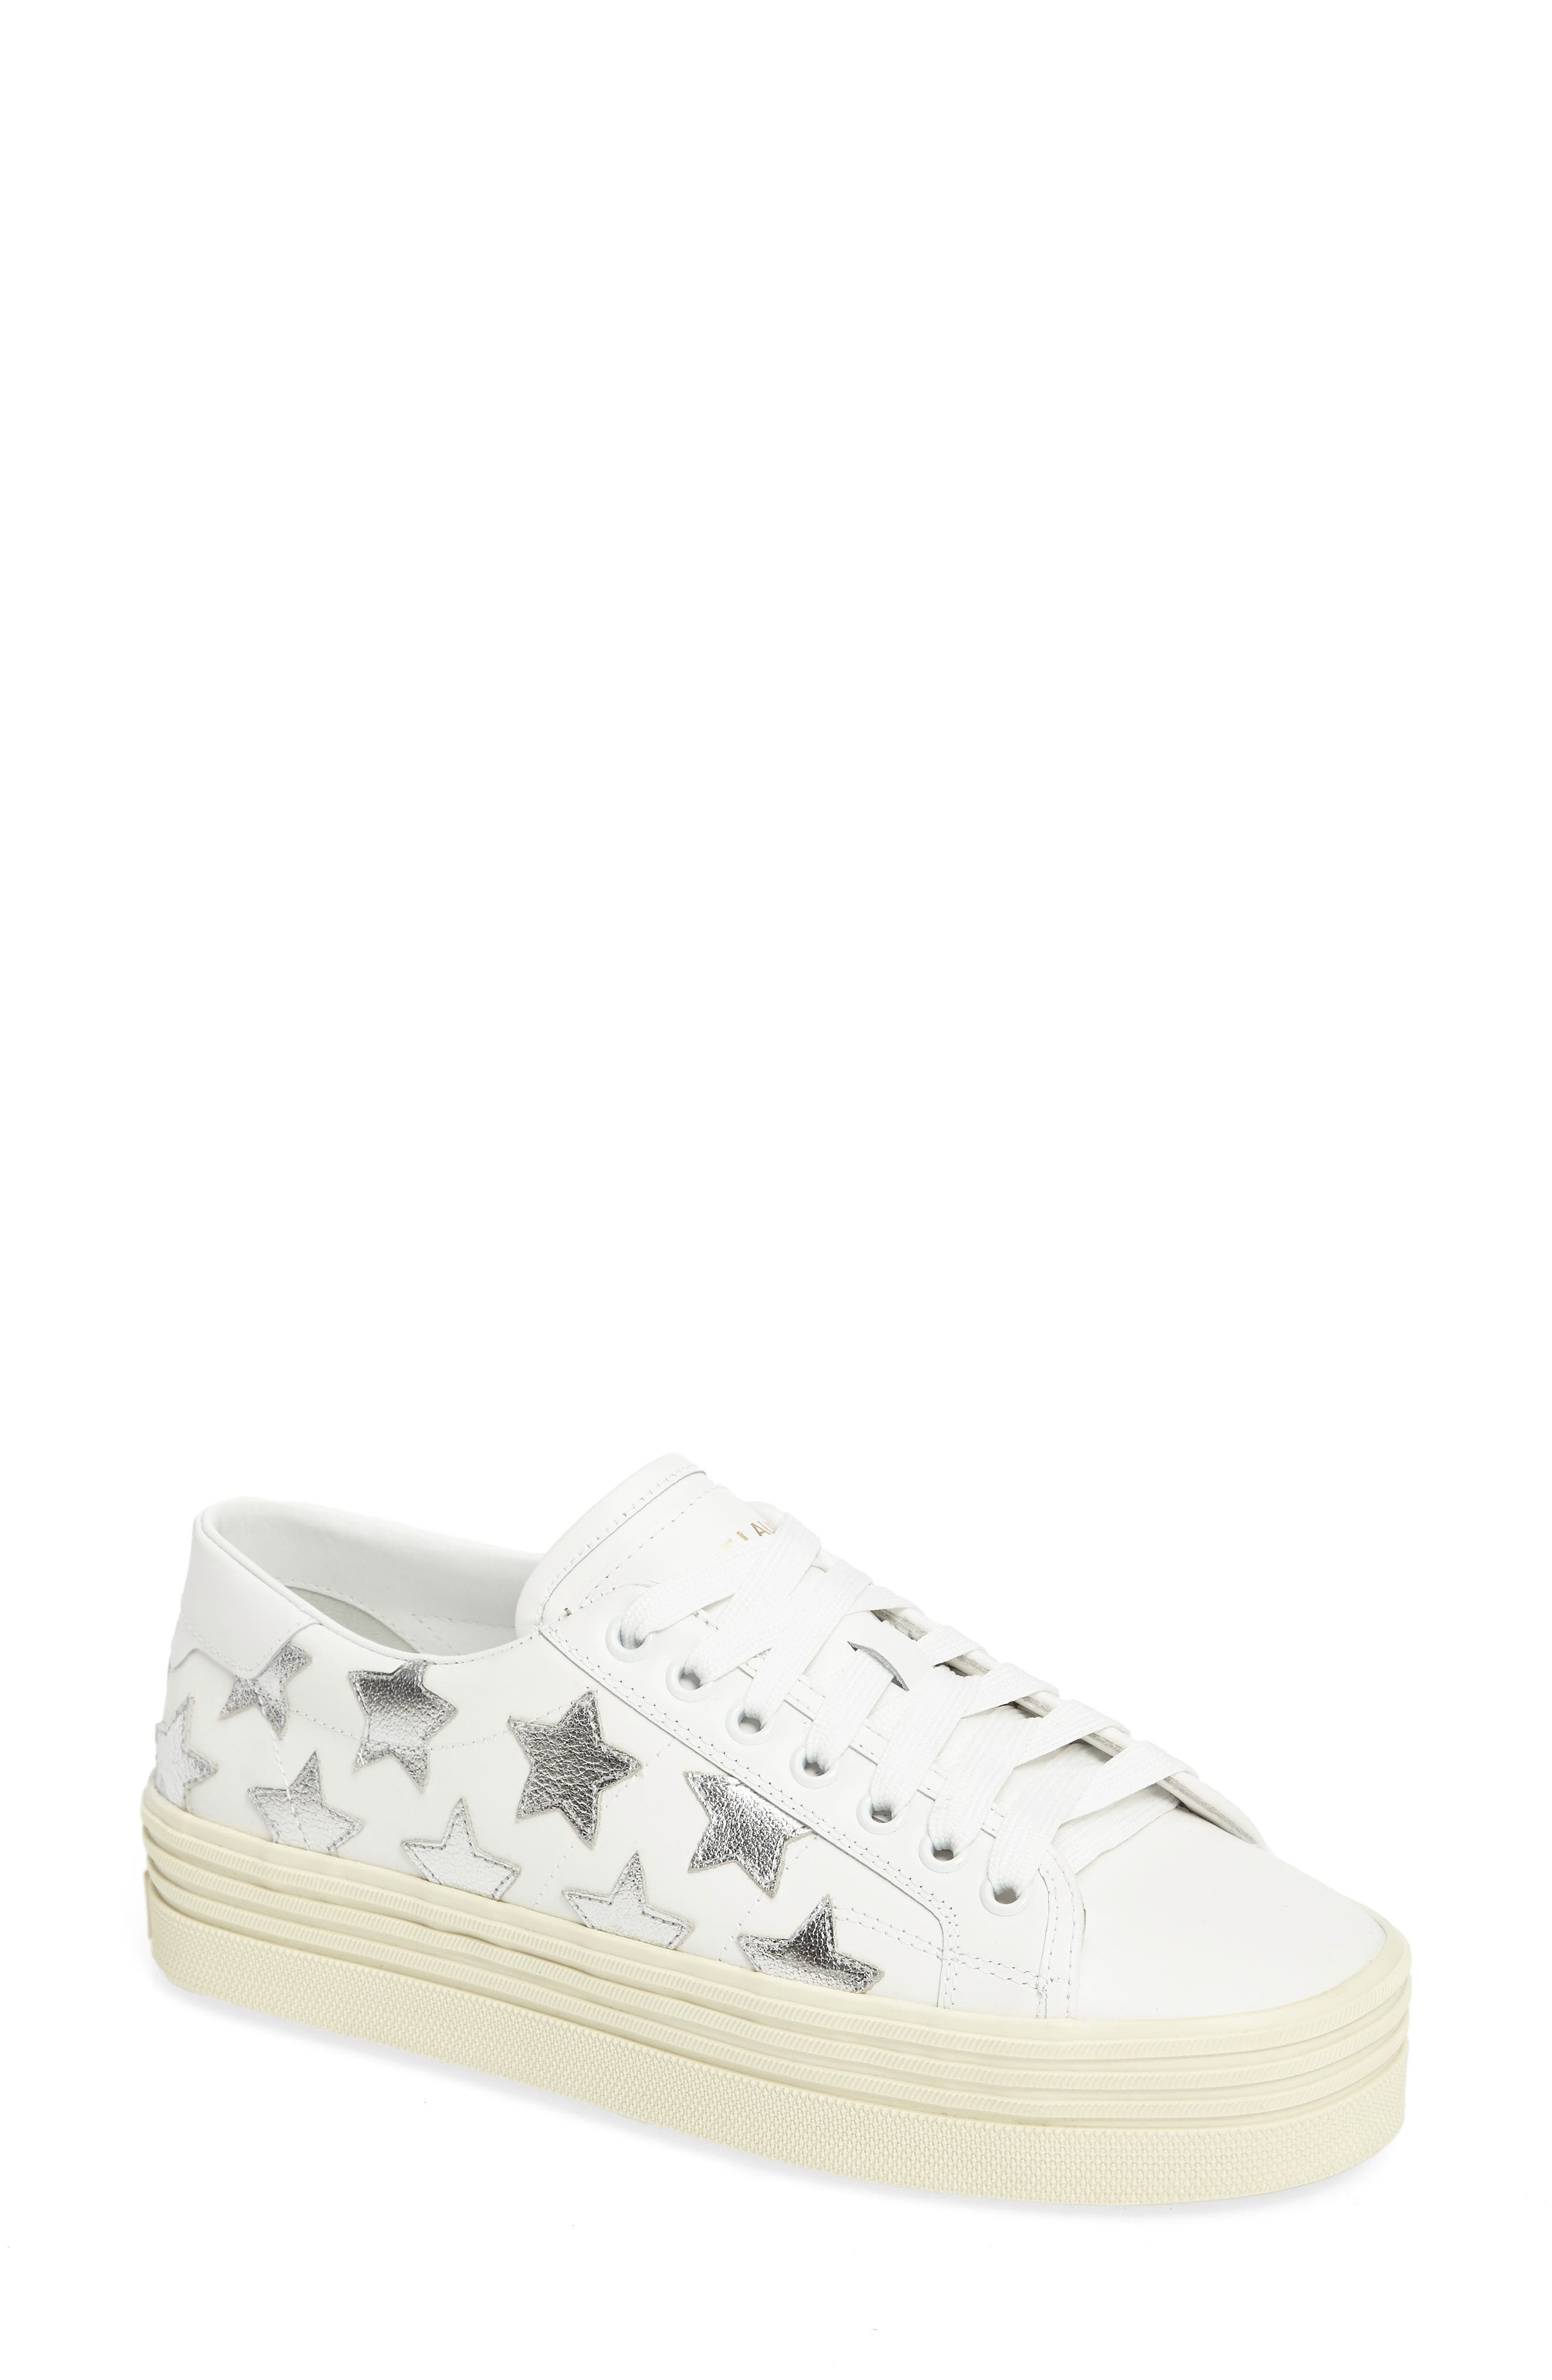 Double Court Classic Sneaker,                             Main thumbnail 1, color,                             Ivory